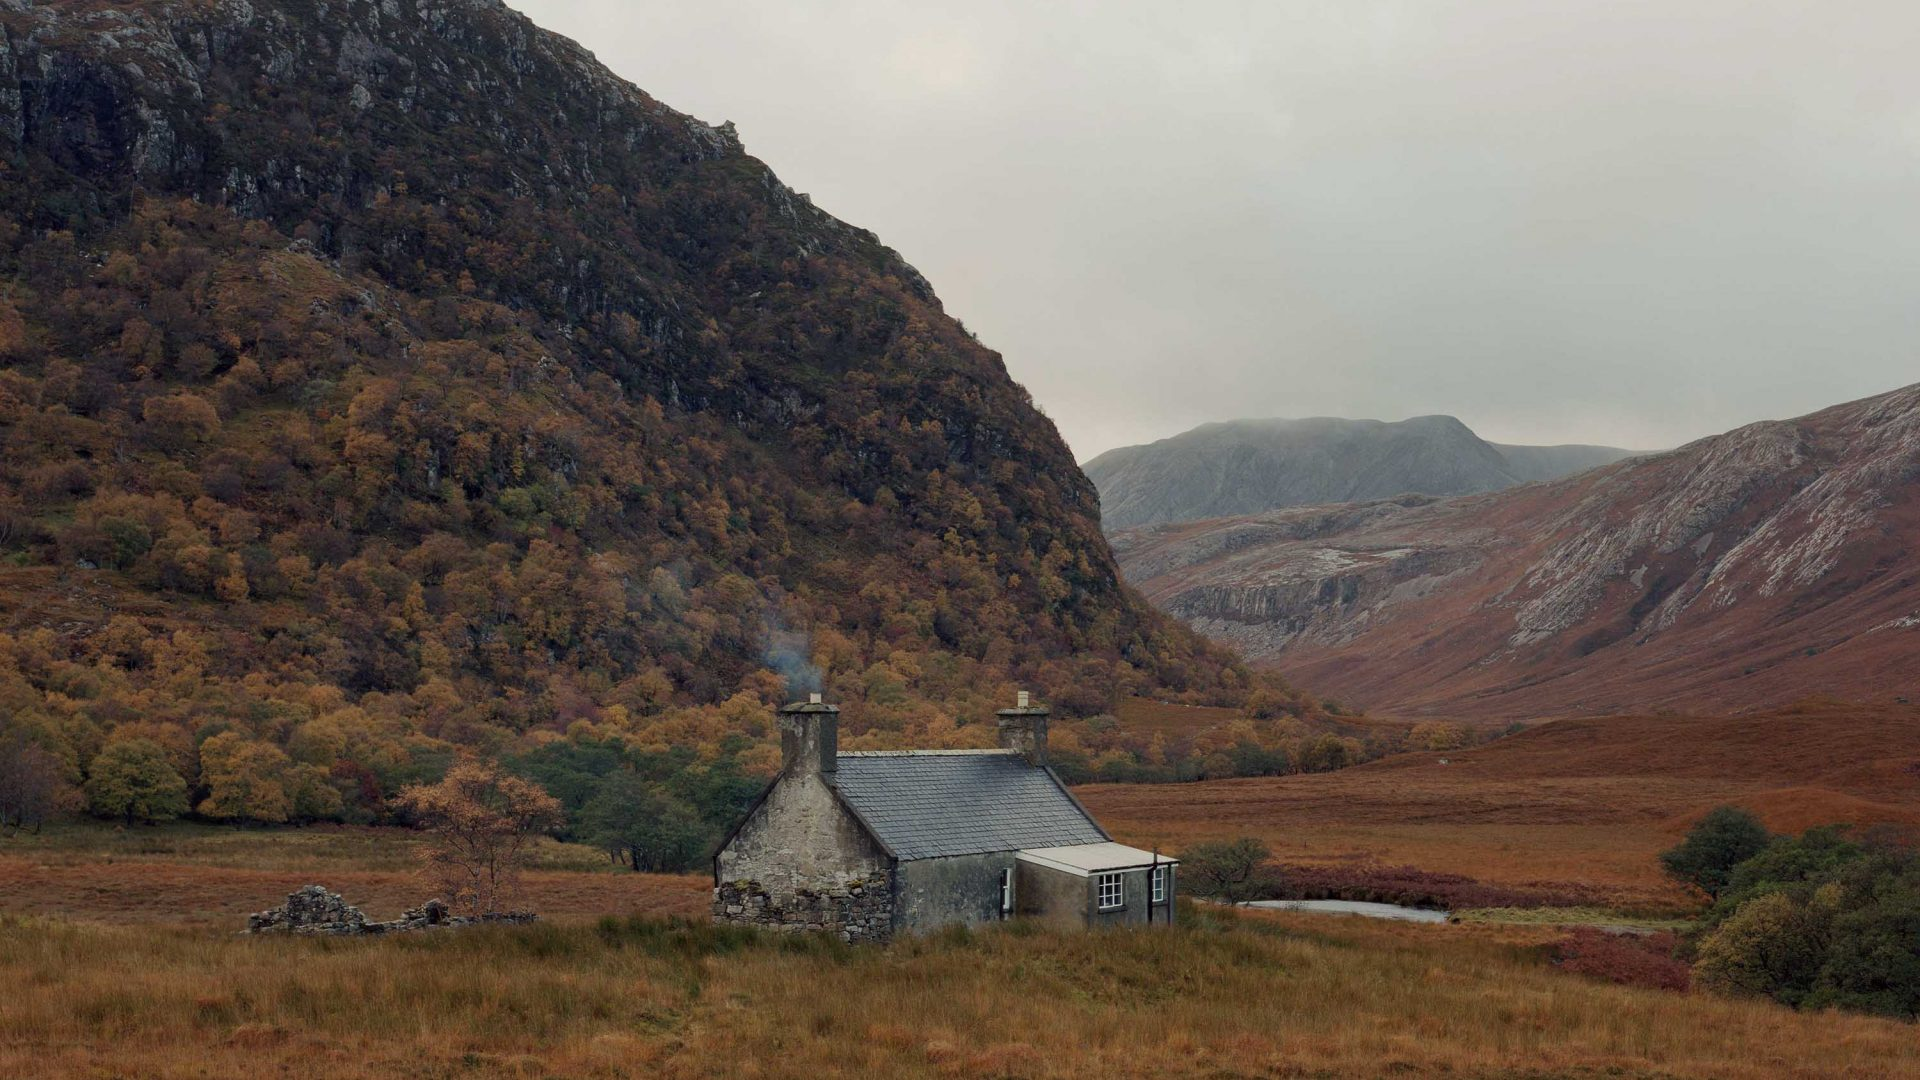 A bothy in Strabeg, Northern Highlands, Scotland.